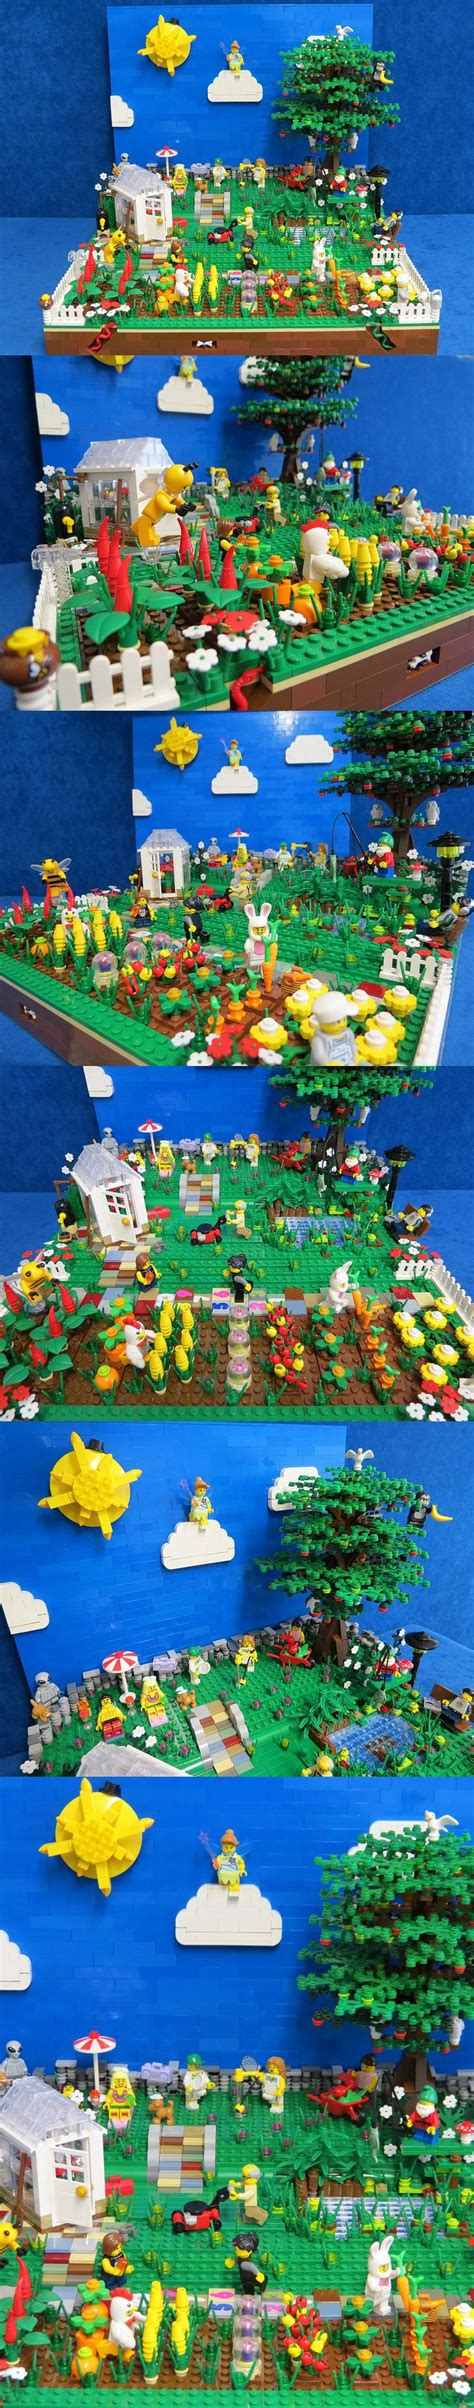 78 images about lego garden on trees parks